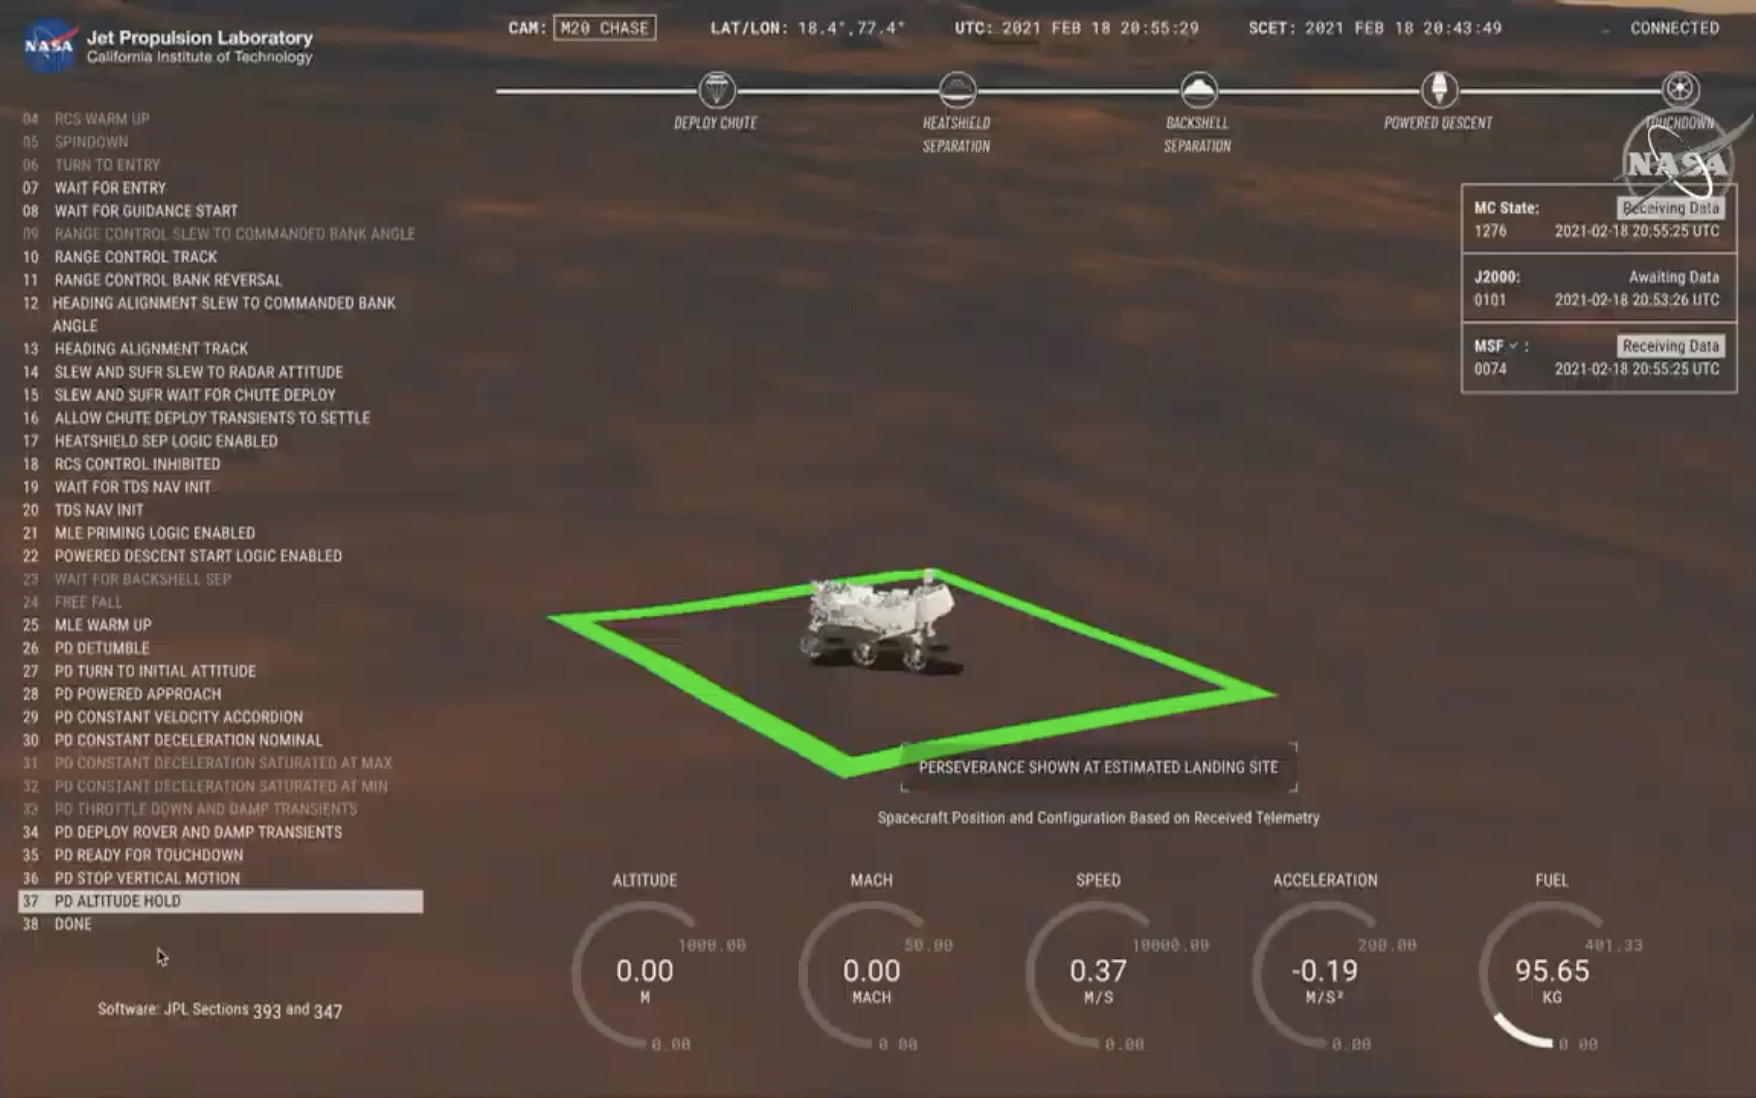 A computer rendering of the Mars rover landed on Mars.